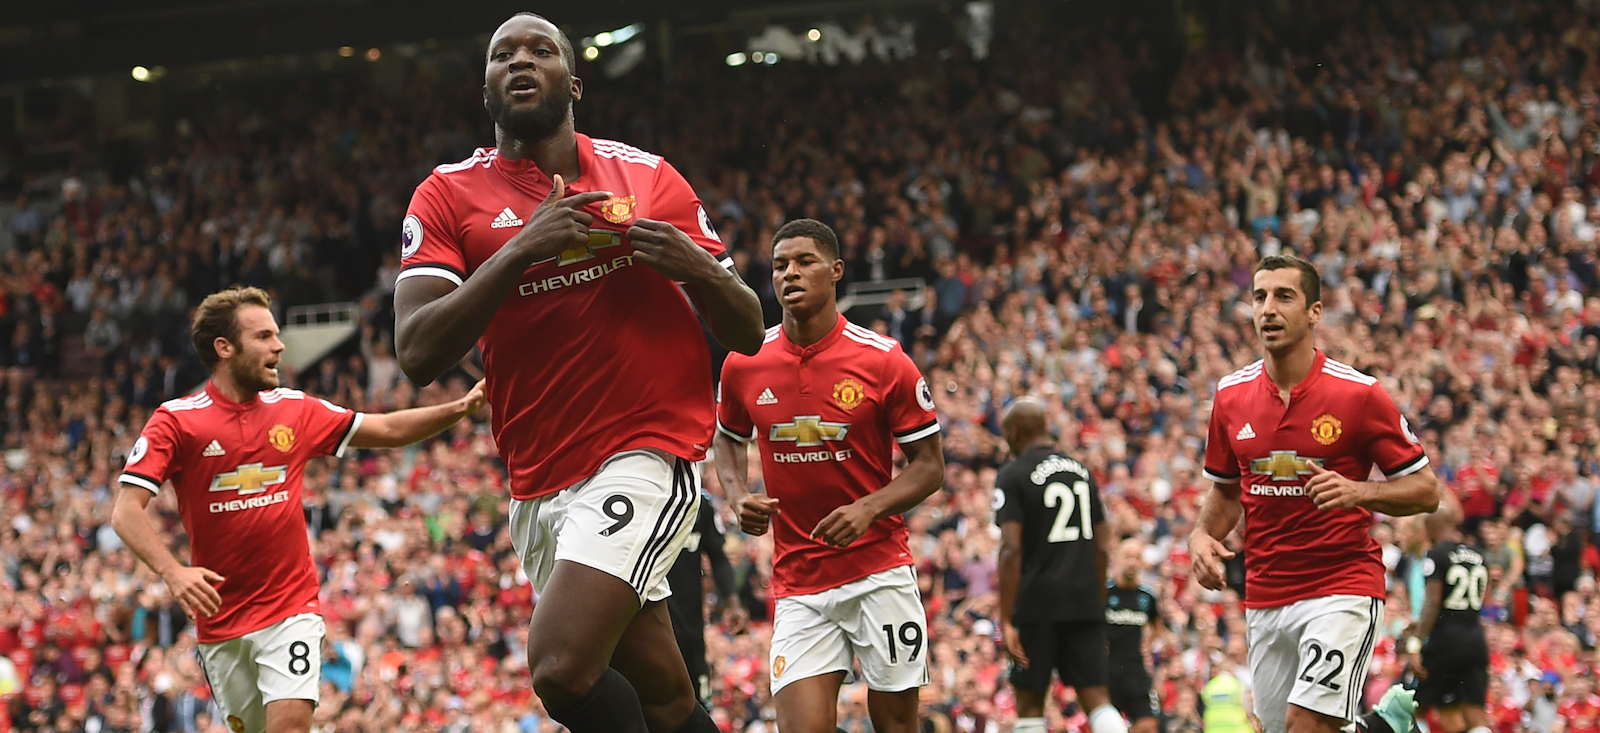 Rio Ferdinand full of praise for Romelu Lukaku's performance against West Ham